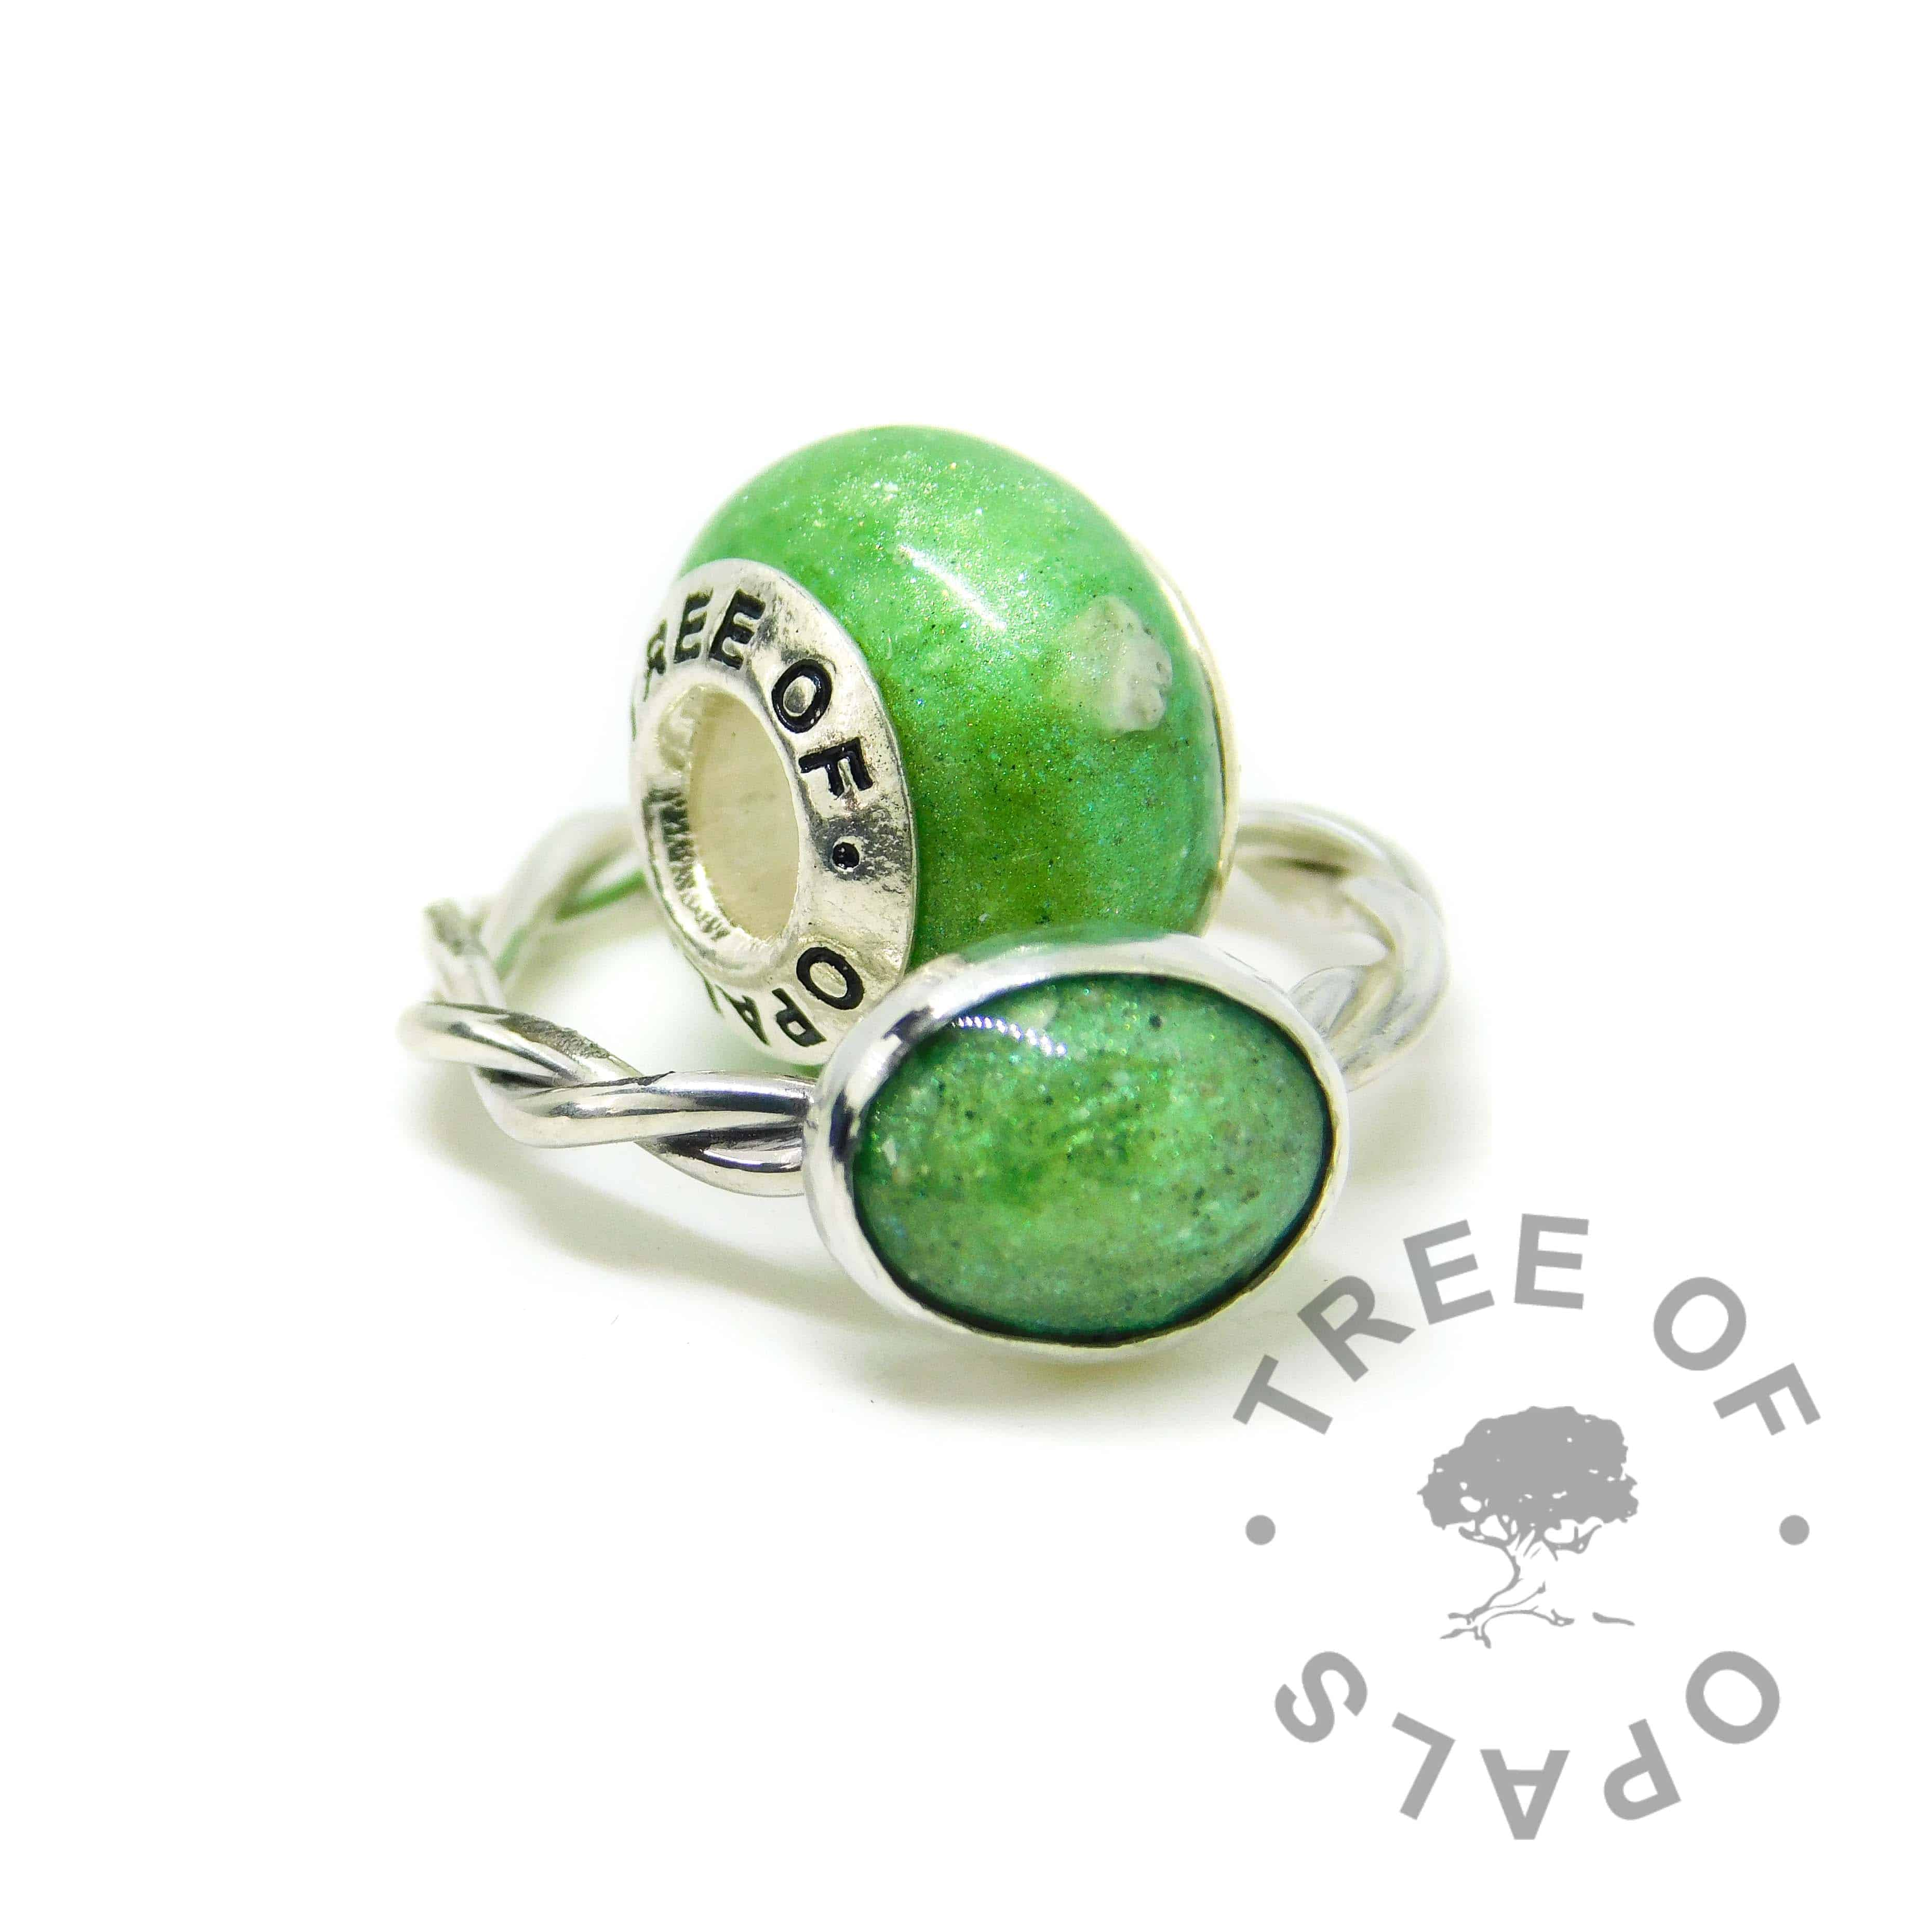 basilisk green sparkles ashes charm and ring, cremation ash, no birthstone